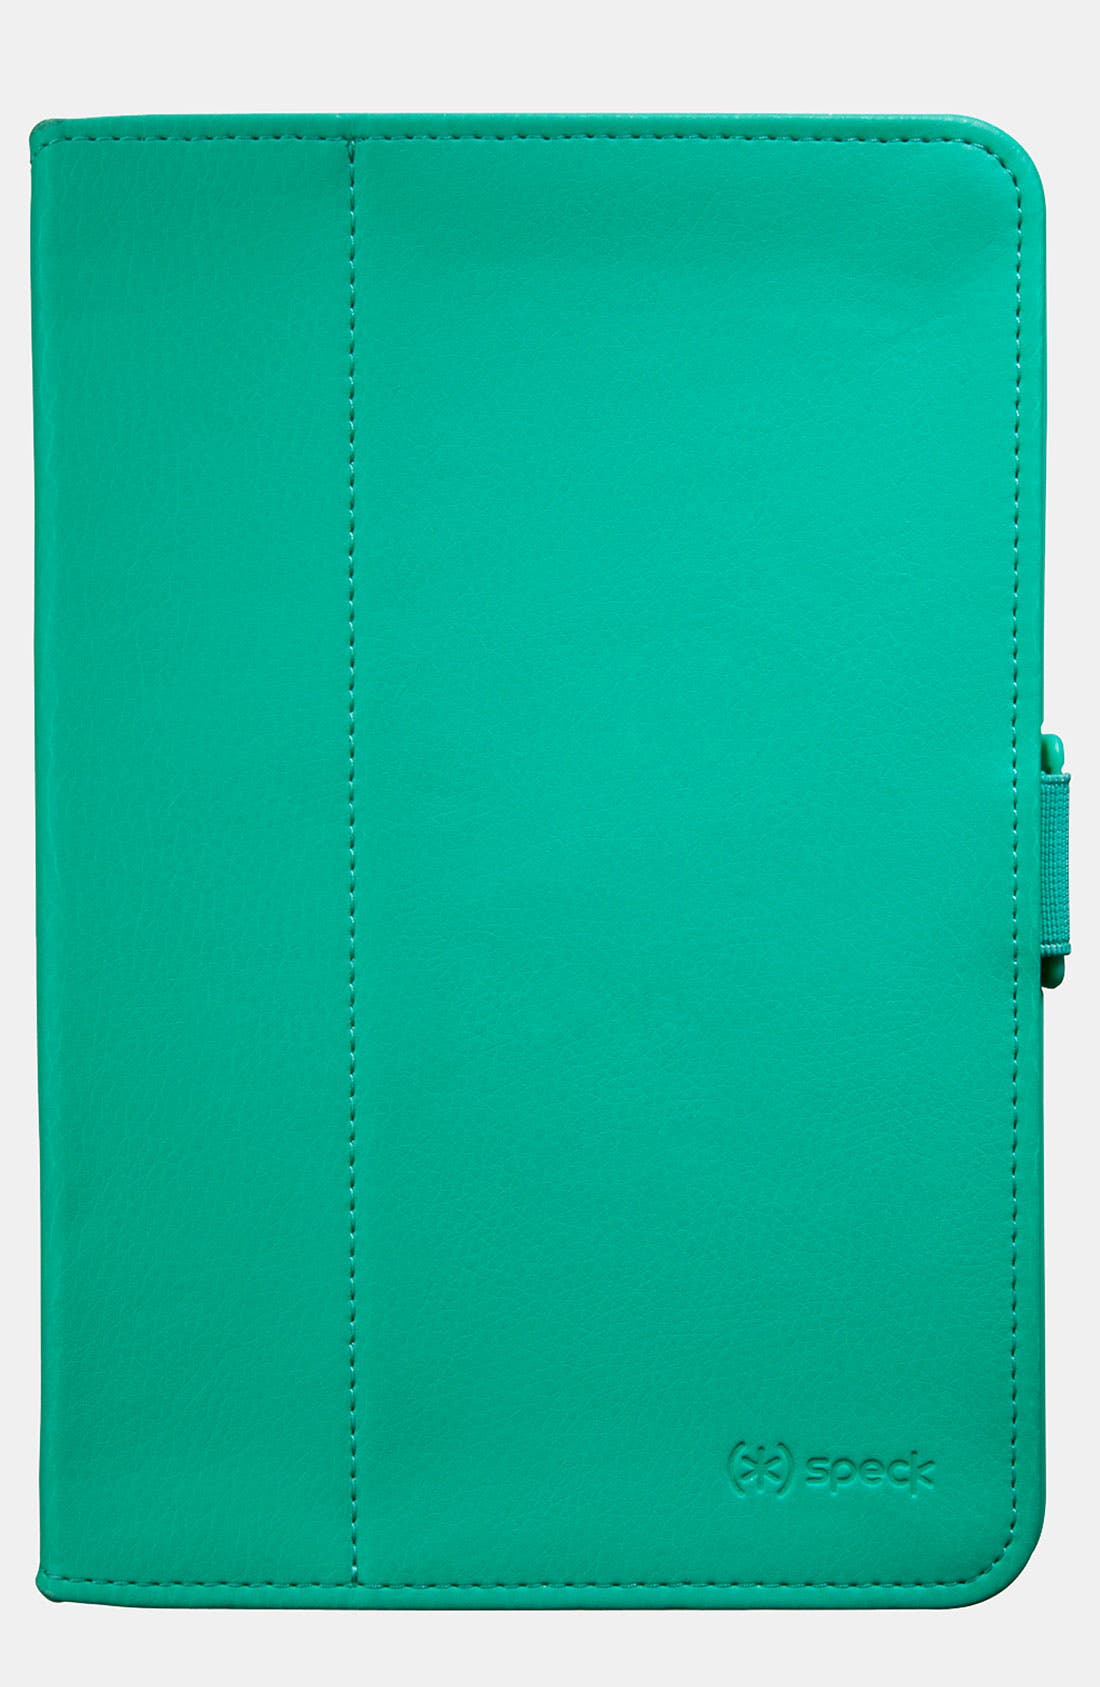 Alternate Image 1 Selected - Speck 'FitFolio' iPad mini Case